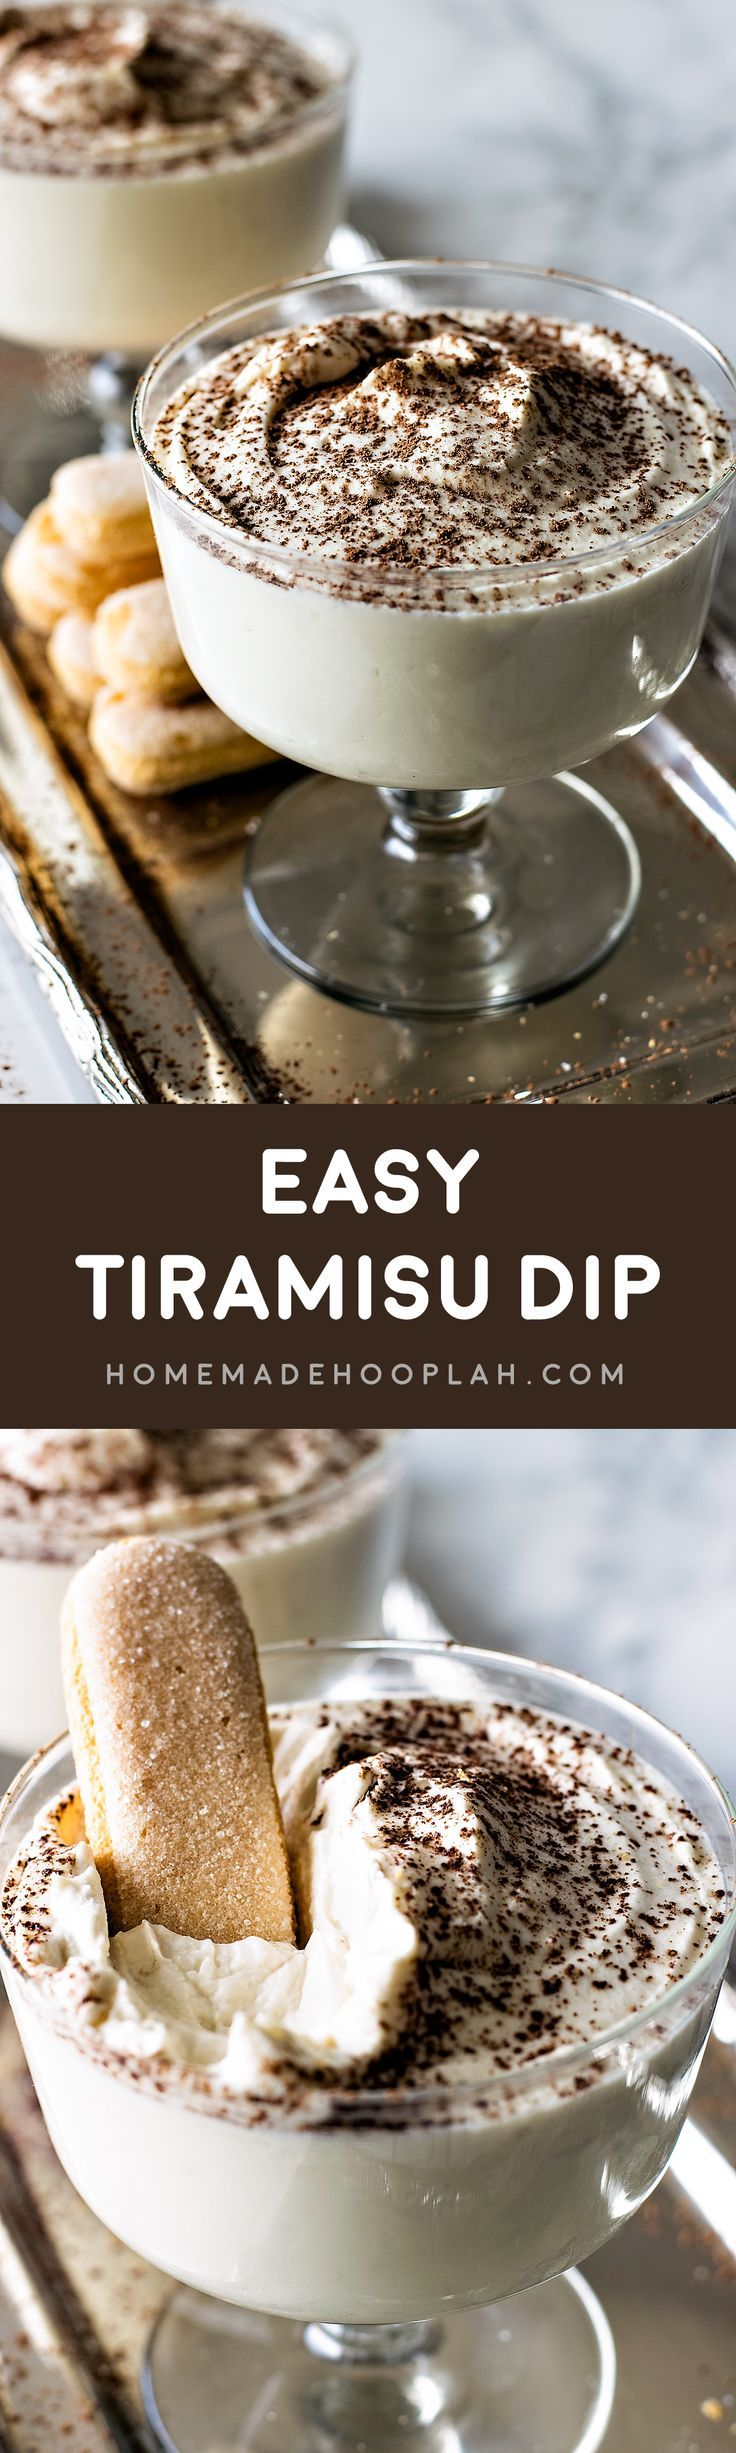 Easy Tiramisu Dip! A decadent dip that tastes just like a tiramisu dessert but made in a fraction of the time. All the taste without all the trouble! | HomemadeHooplah.com